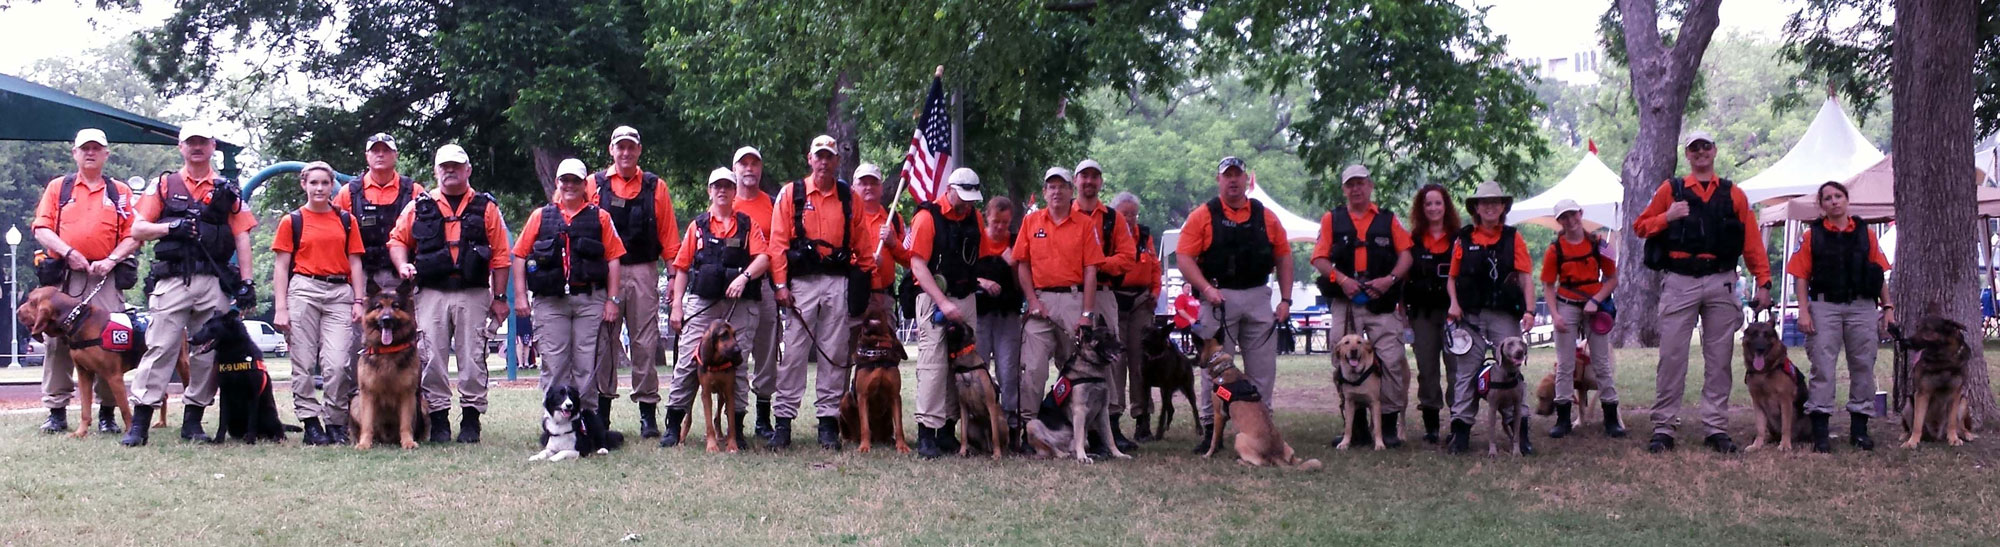 search one rescue team - searchone.org - dallas texas search and rescue